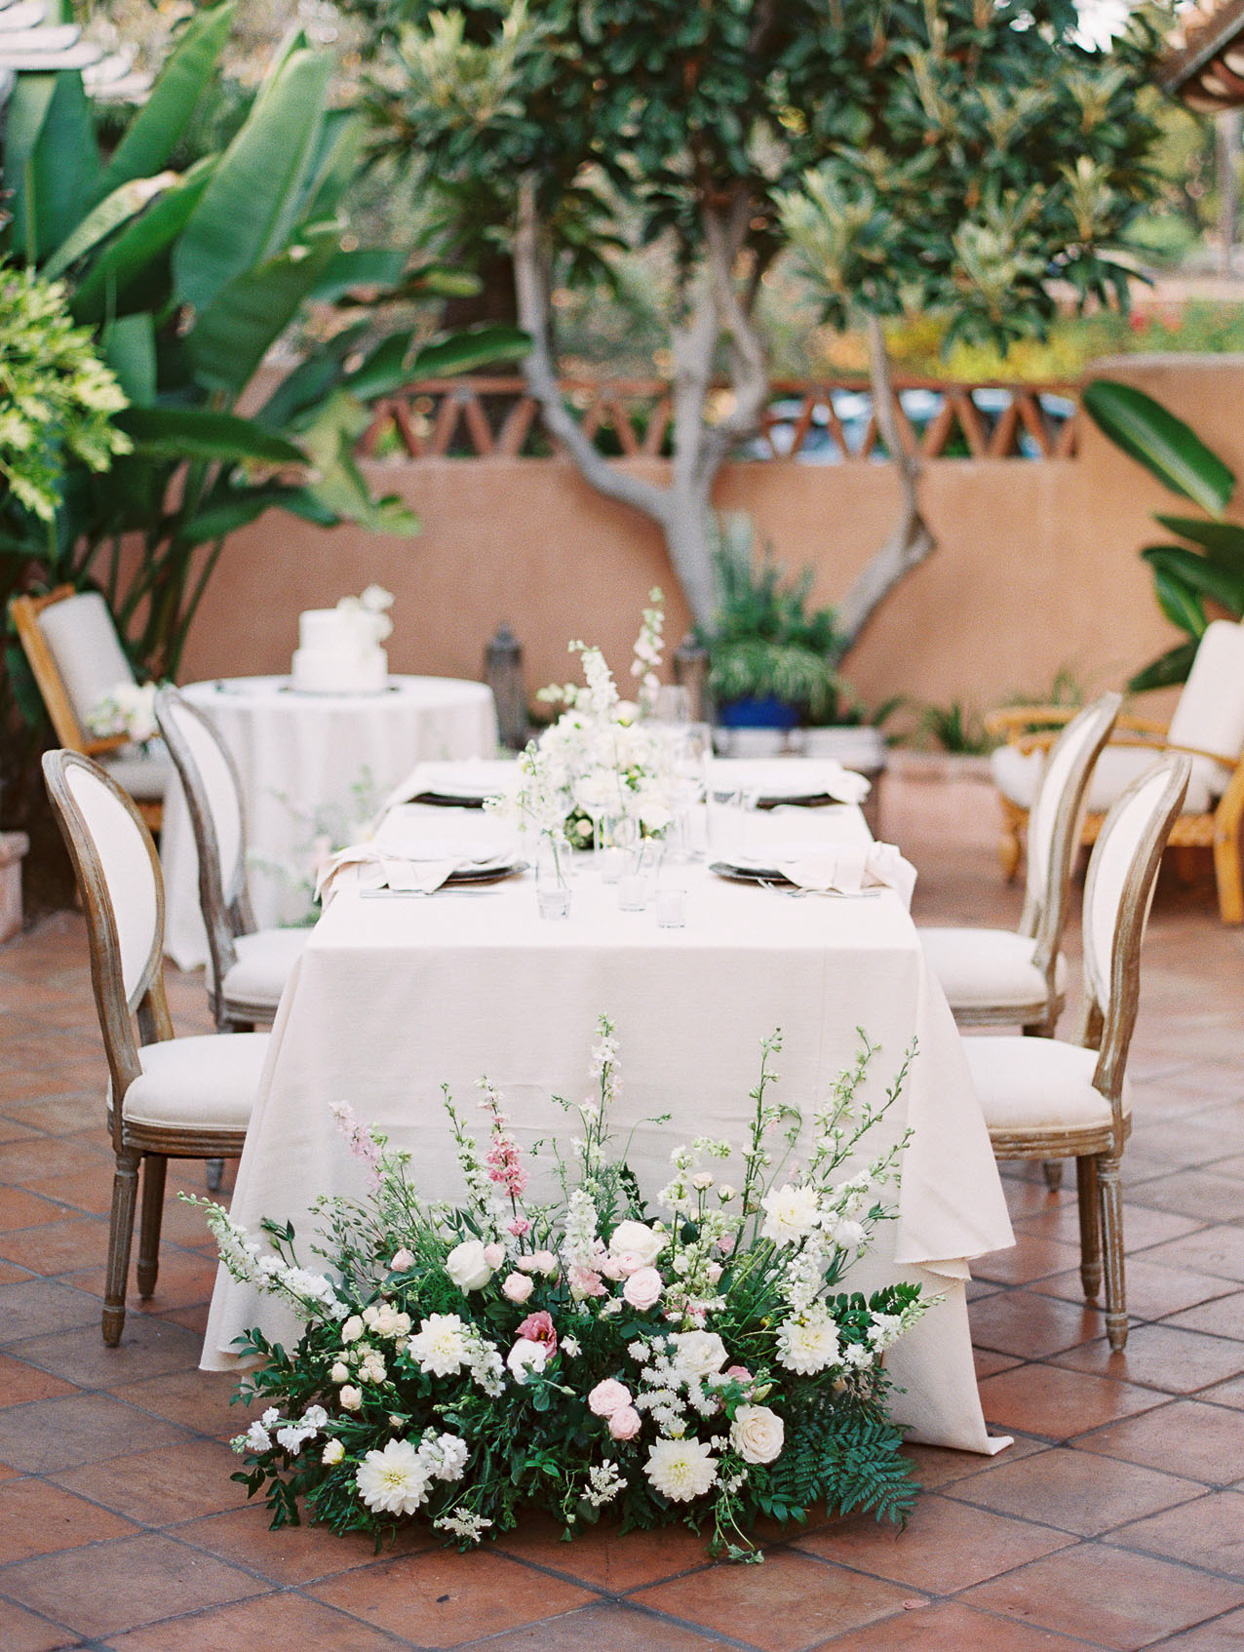 small white table for four on patio for wedding reception